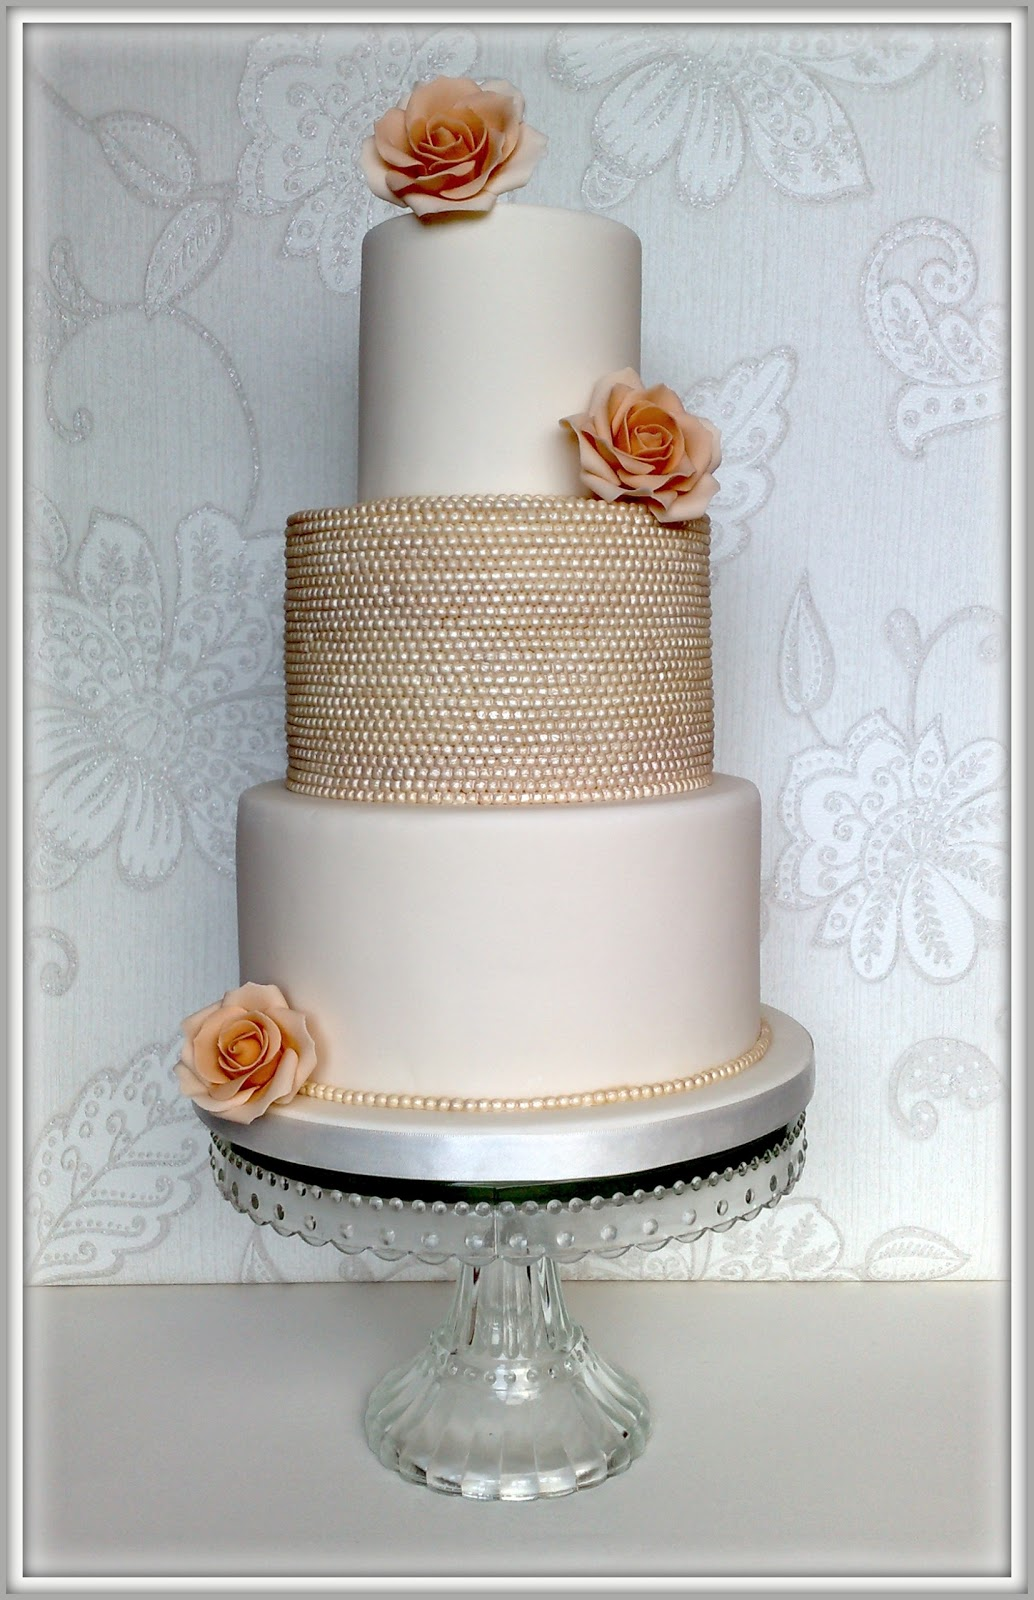 Small Things Iced Vintage Pearl Rose Wedding Cake